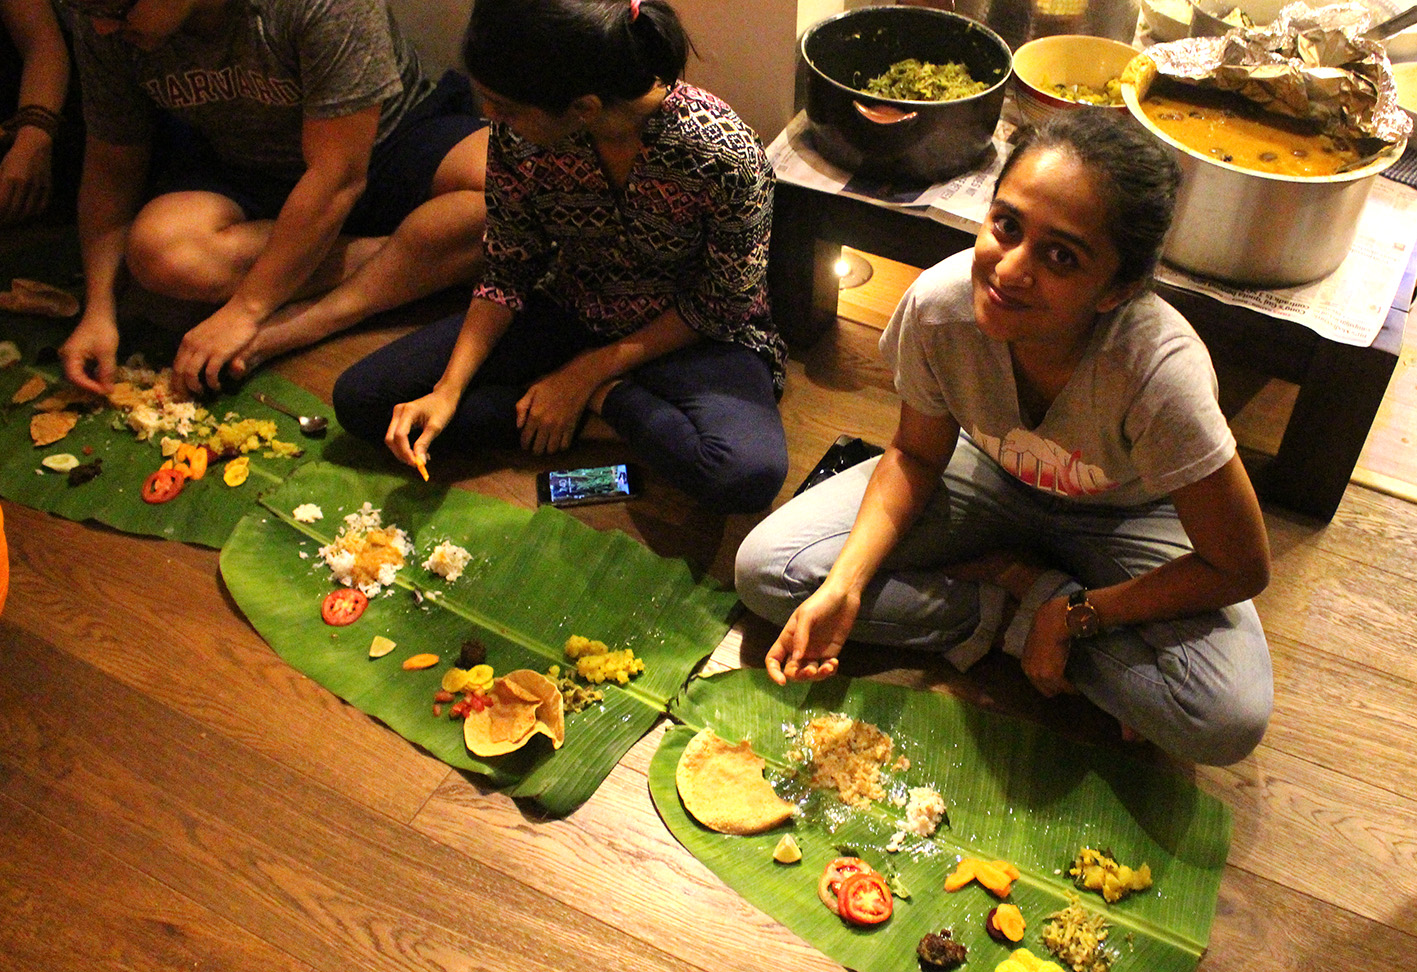 An abundant feast lovingly shared and served on banana leaves